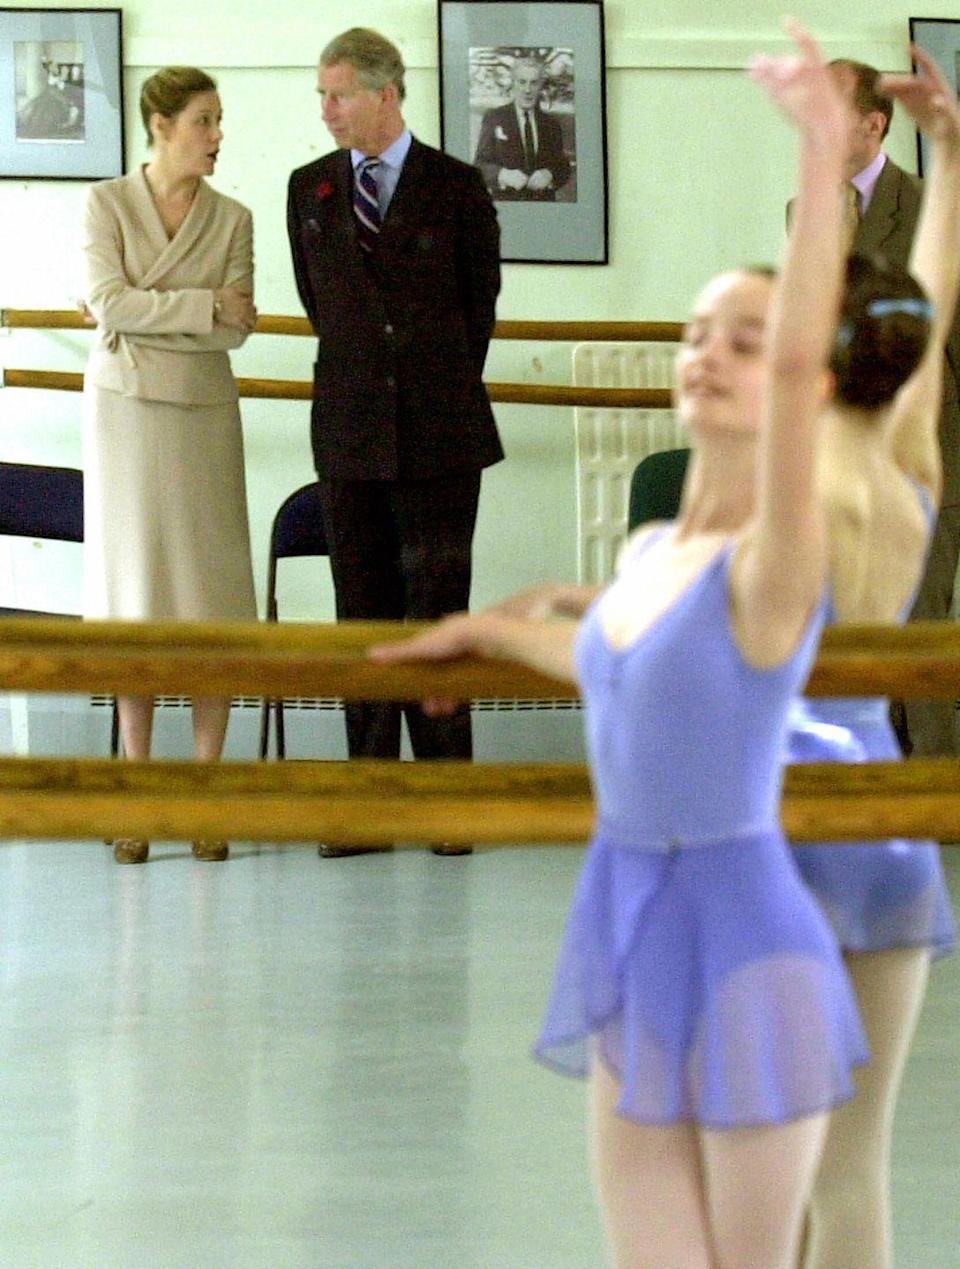 <p>Prince Charles currently serves as the President of the Royal Ballet. Here is is watching a lesson at the organizations's White Lodge School in Richmond Park in 2004.</p>